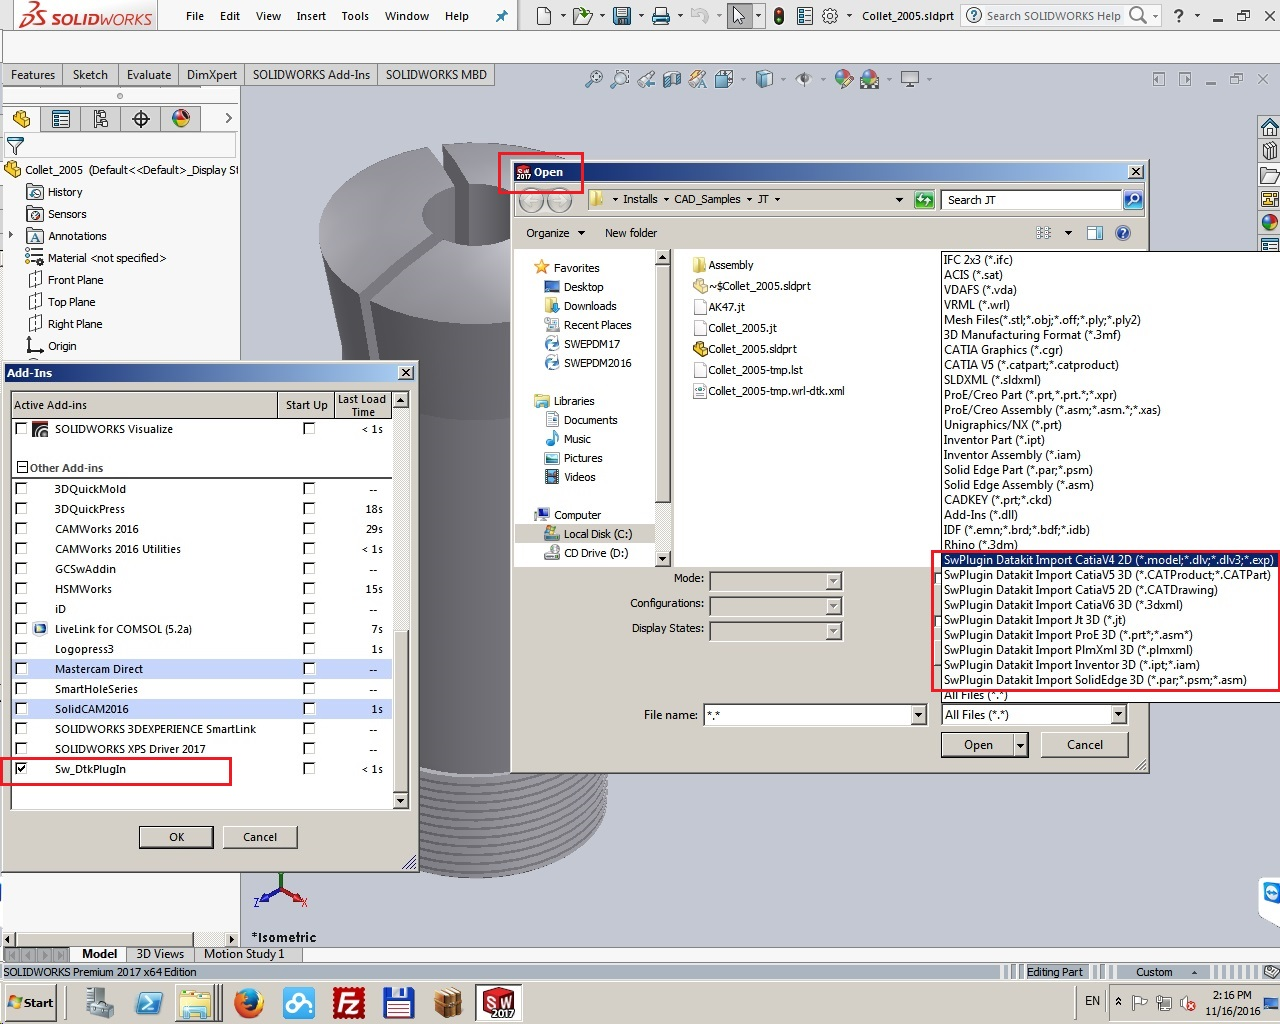 DATAKIT 2016 Plugins for SolidWorks 2010-2017 full